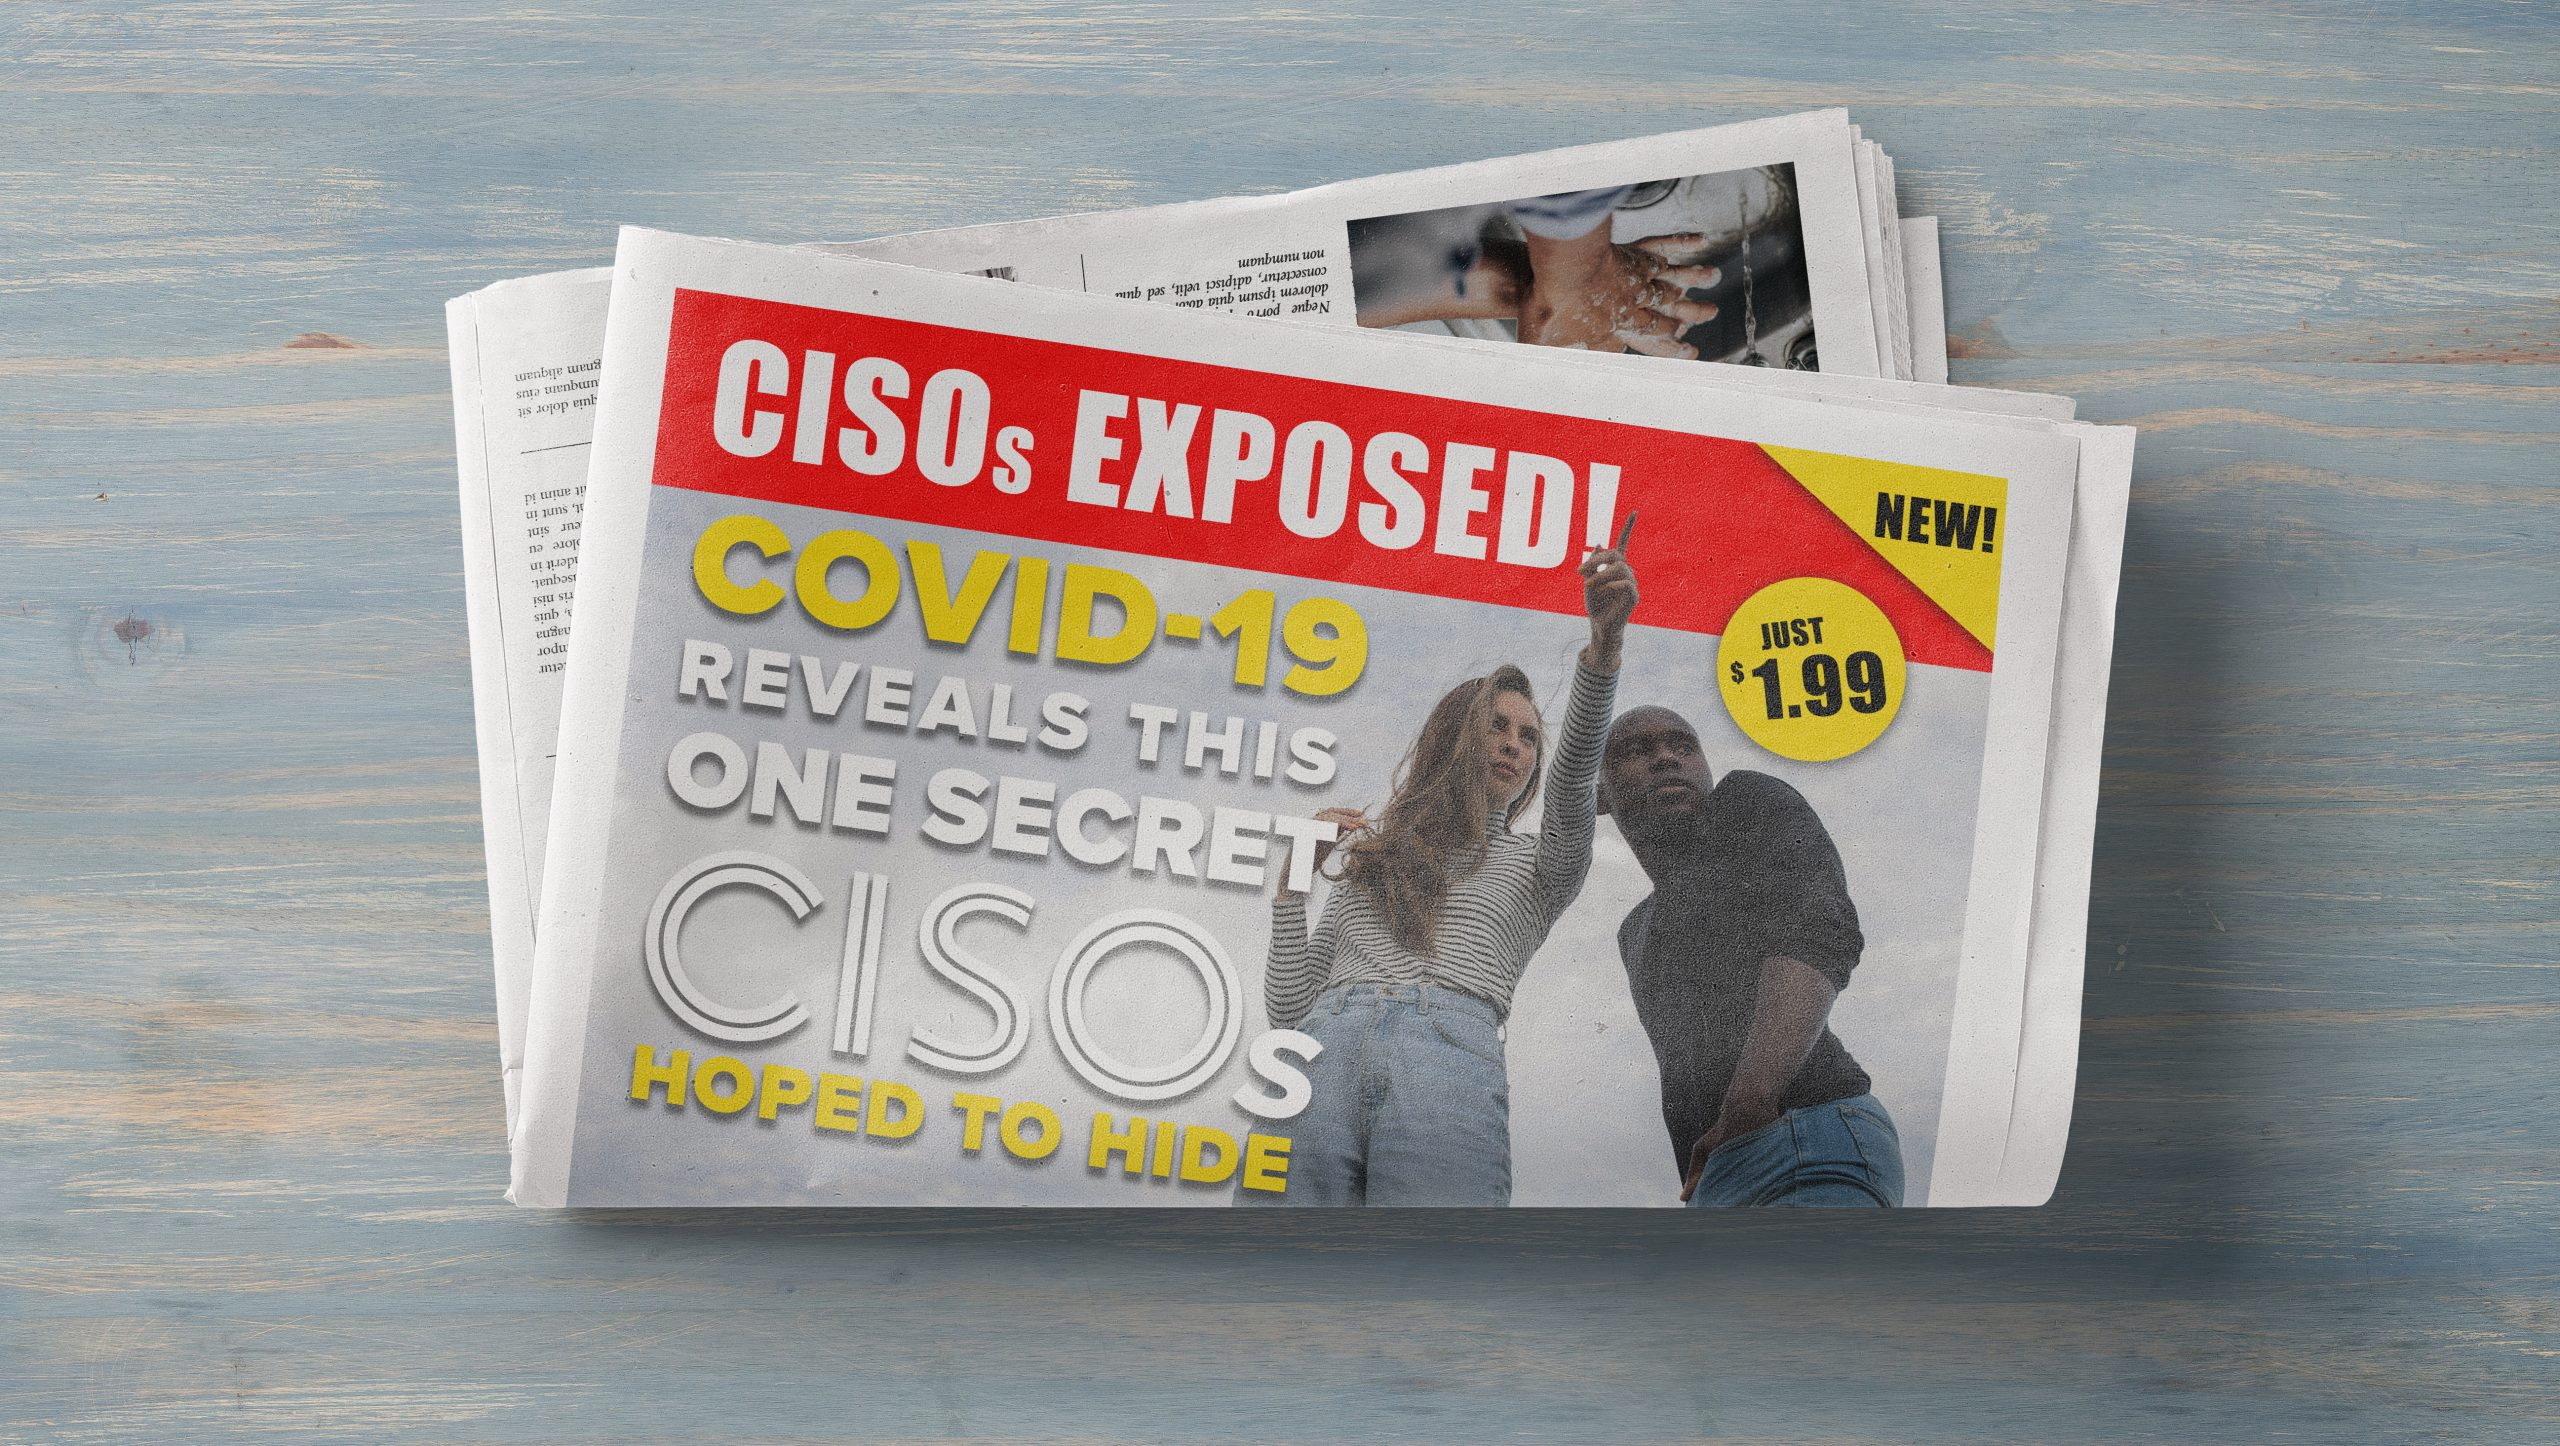 COVID19 Exposes This One Secret CISOs Hoped to Hide